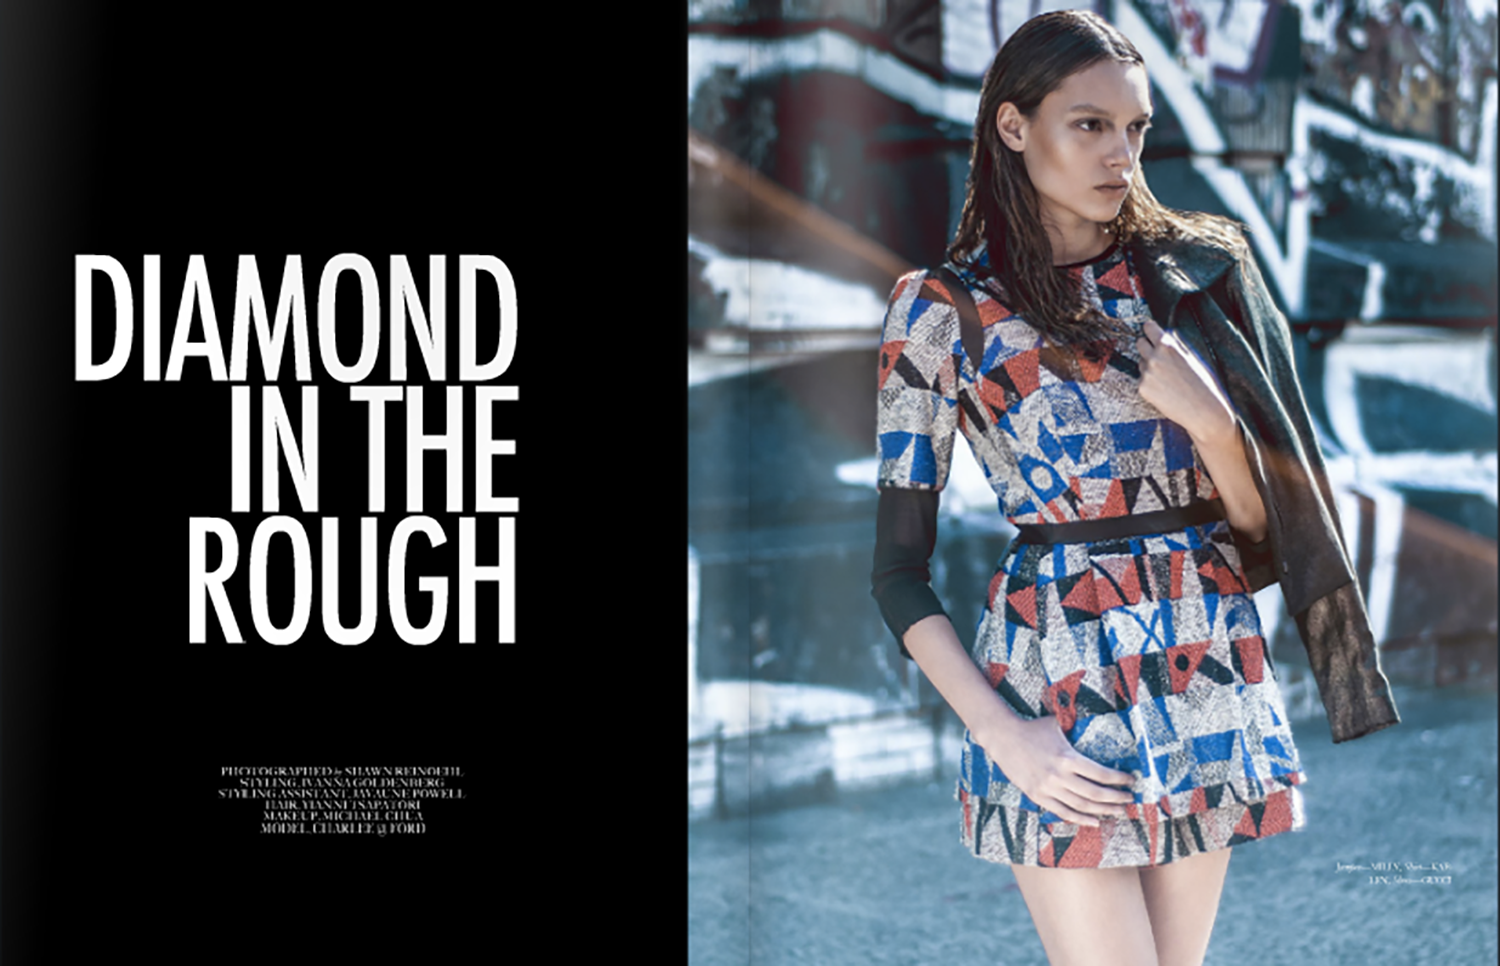 DIAMOND IN THE ROUGH KNEON ISSUE 9 ALIVE & WELL